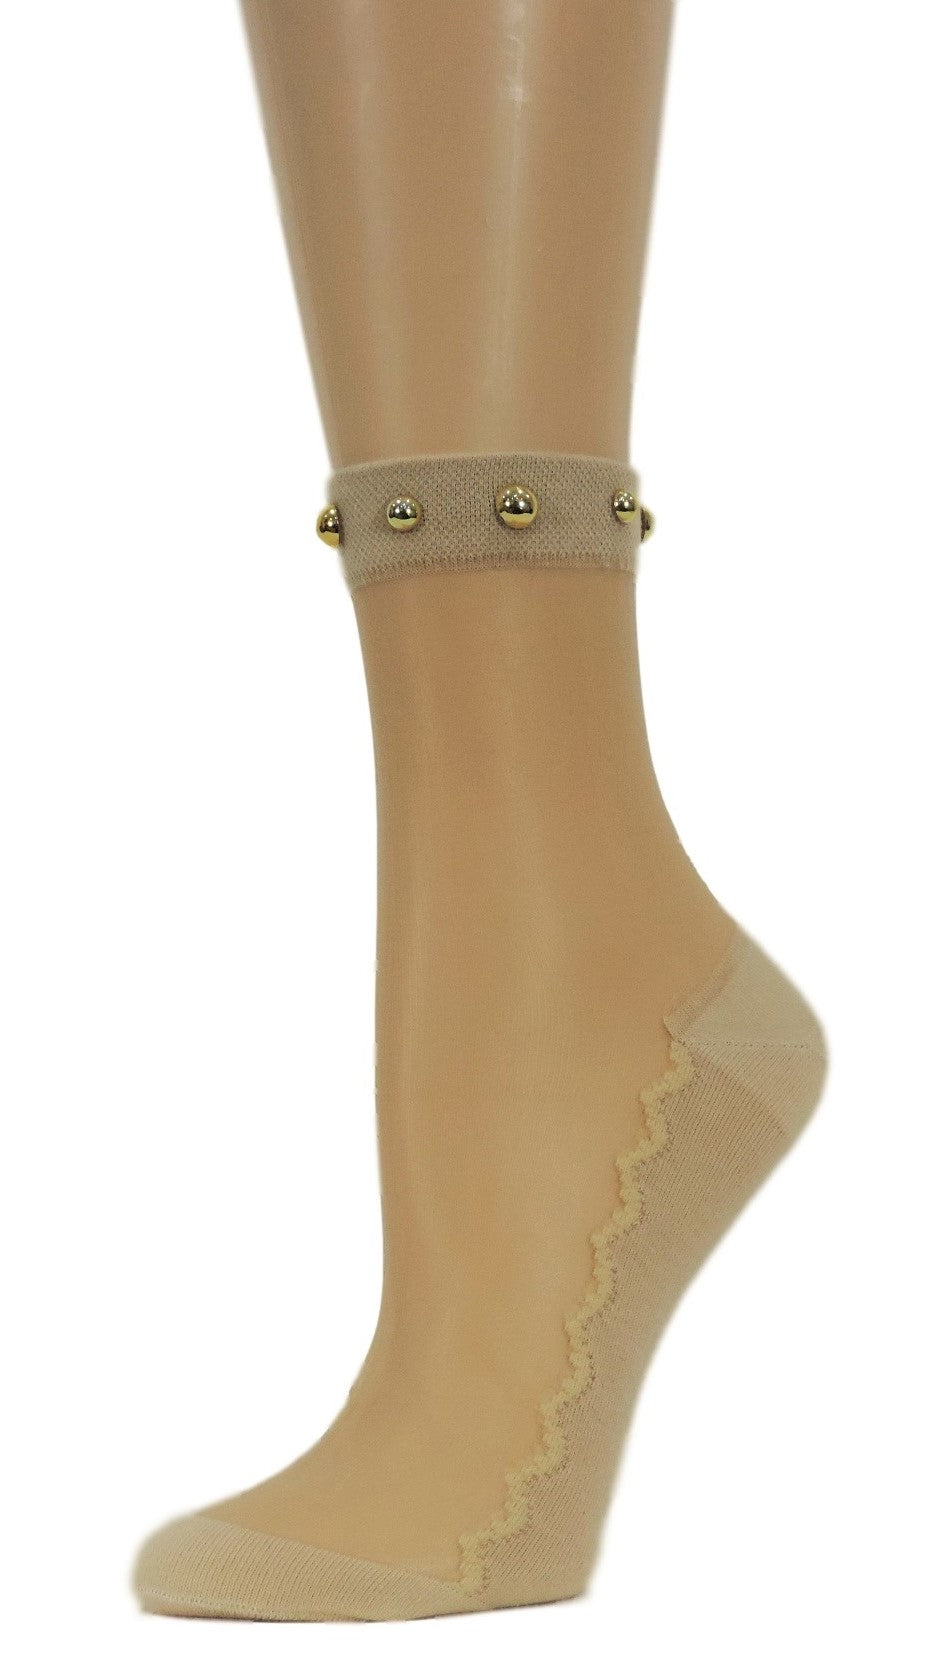 Simple Beige Striped Custom Sheer Socks with beads